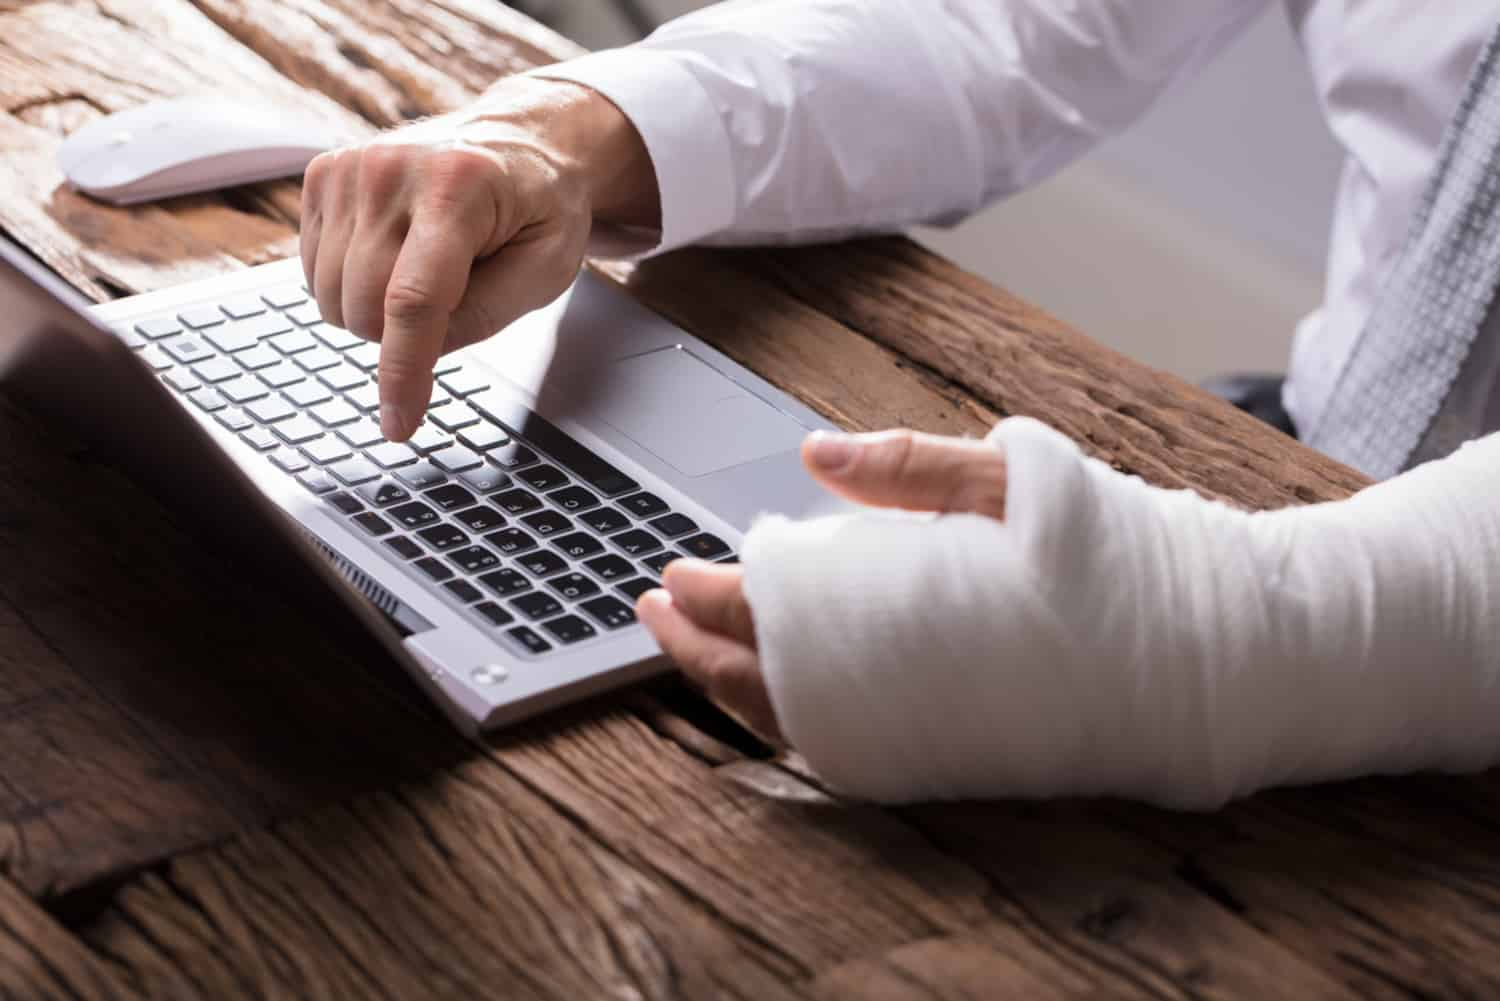 How accurate is a personal injury calculator?